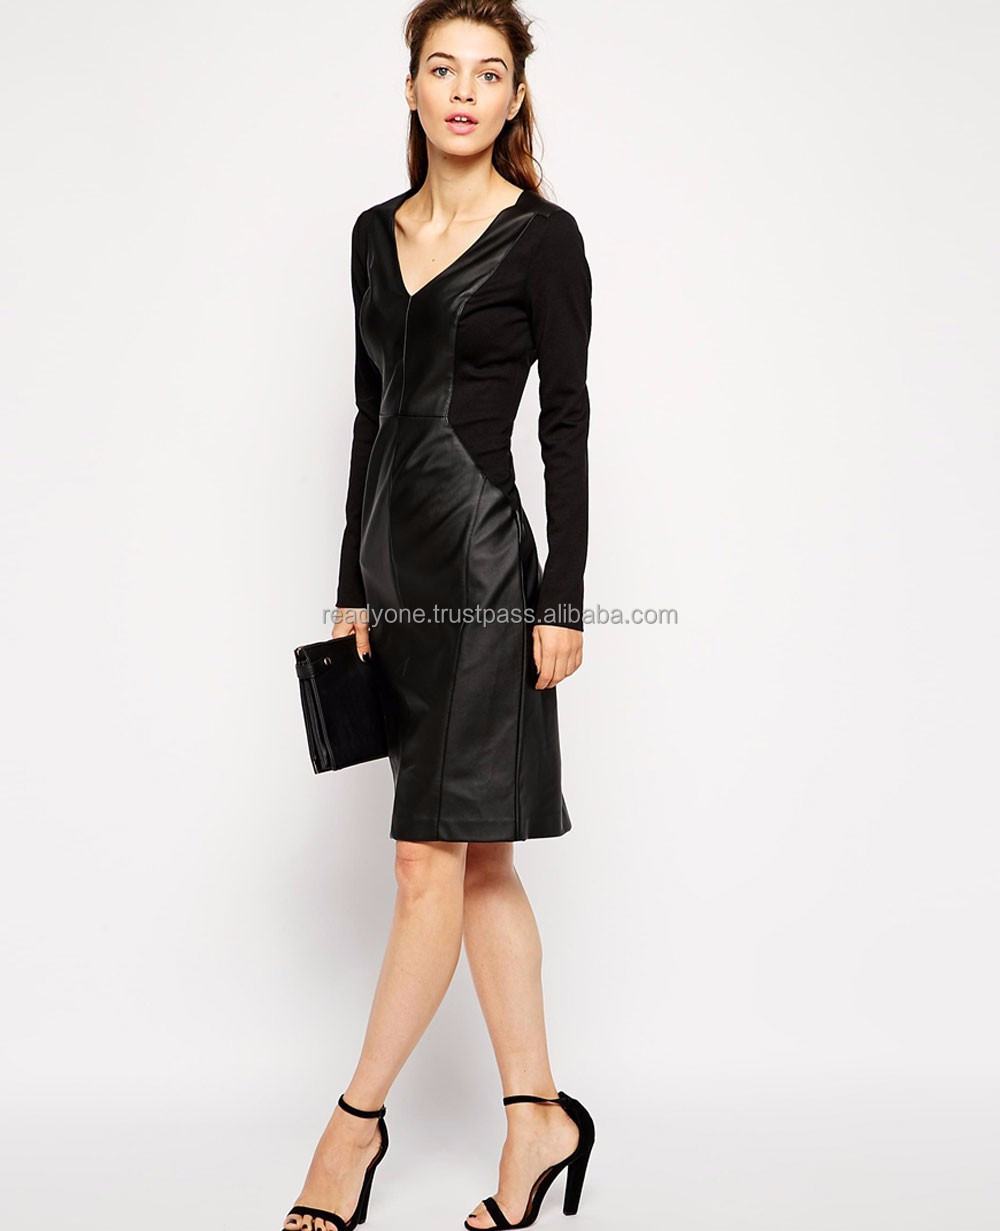 European style custom design slim fitted long black leather dress